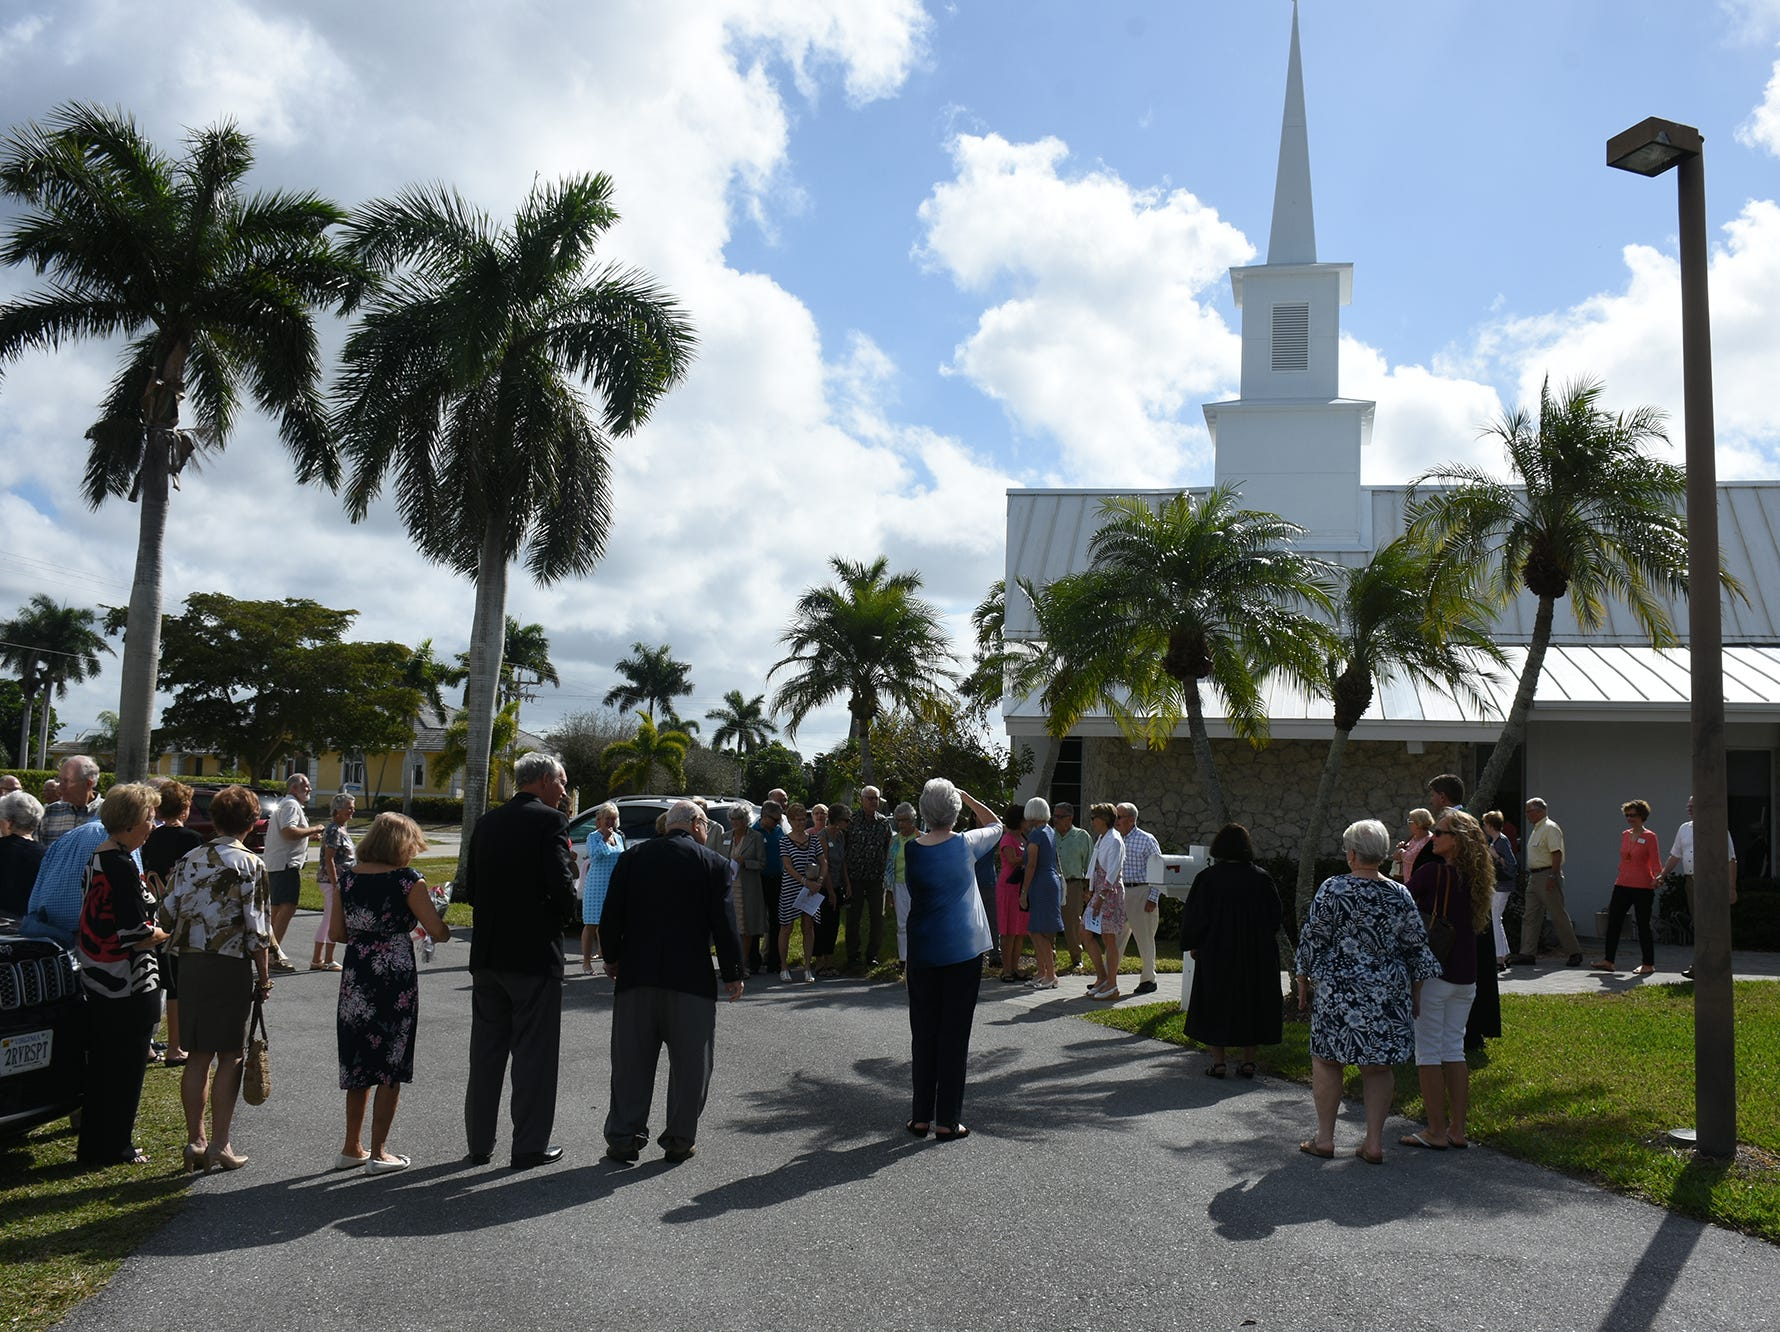 Parishioners gather outside for the dedication. United Church of Marco Island held a ceremony Sunday dedicating their newly erected steeple, which was damaged during Hurricane Irma.